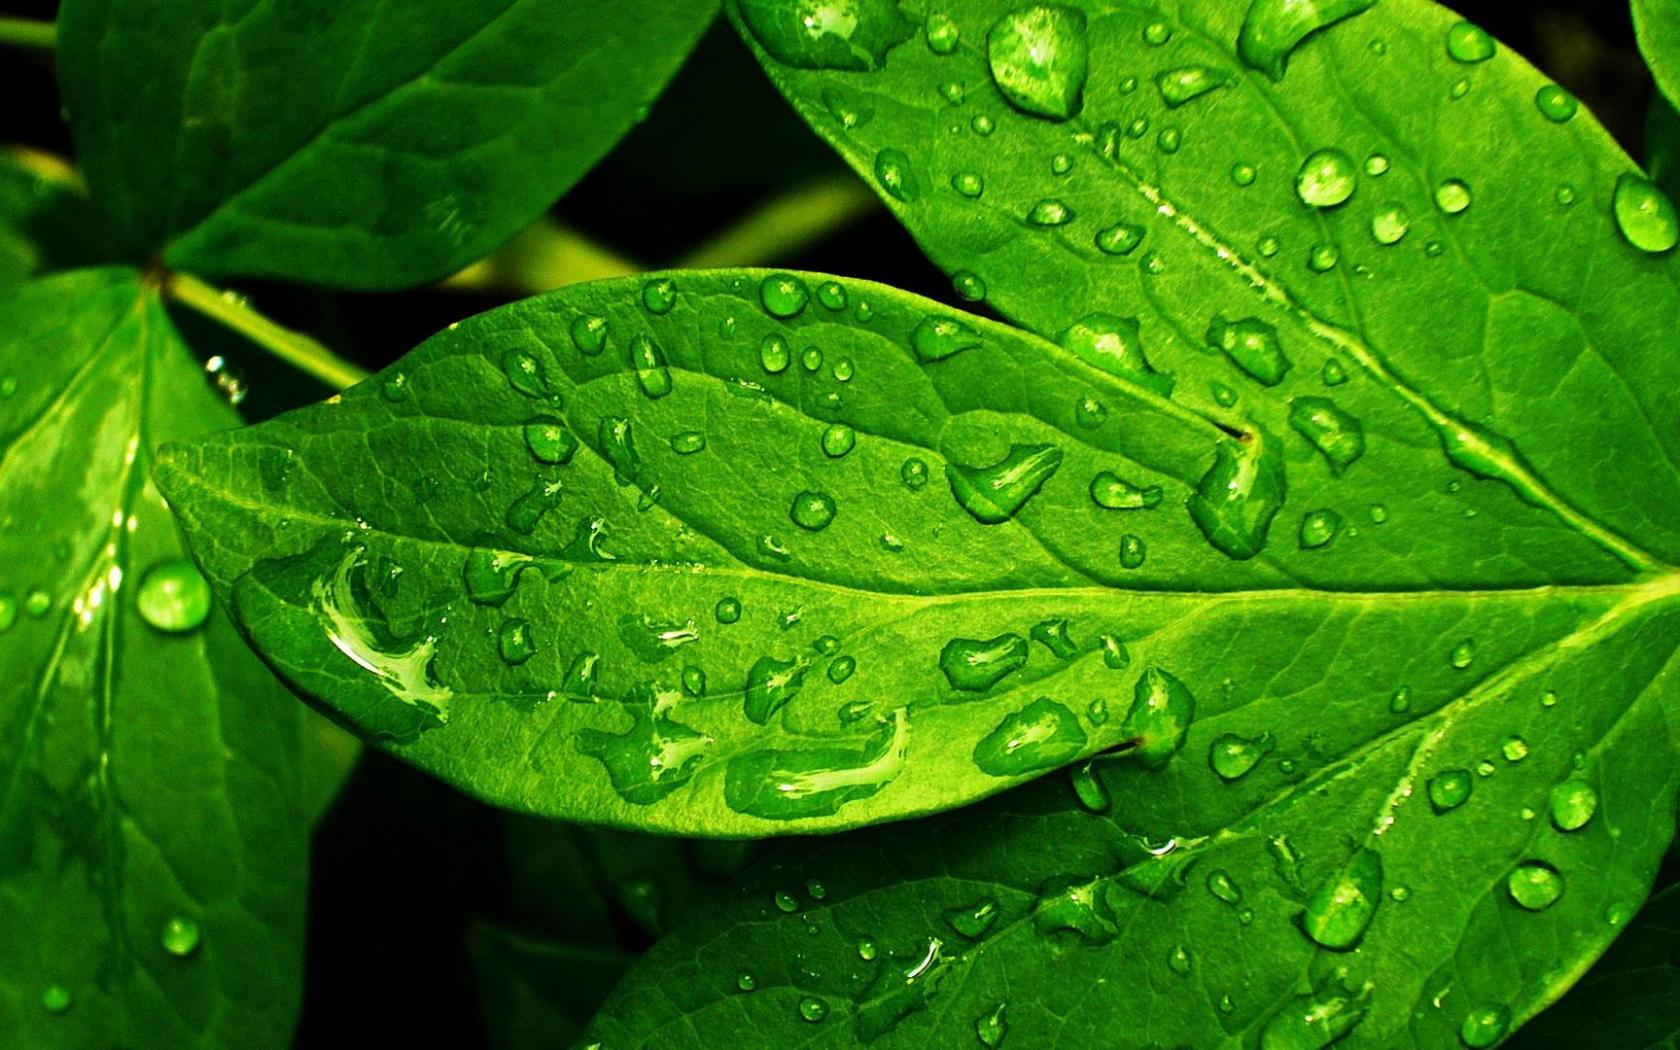 HD Picture Nature with Stunning Green Wet Leaf | HD ...